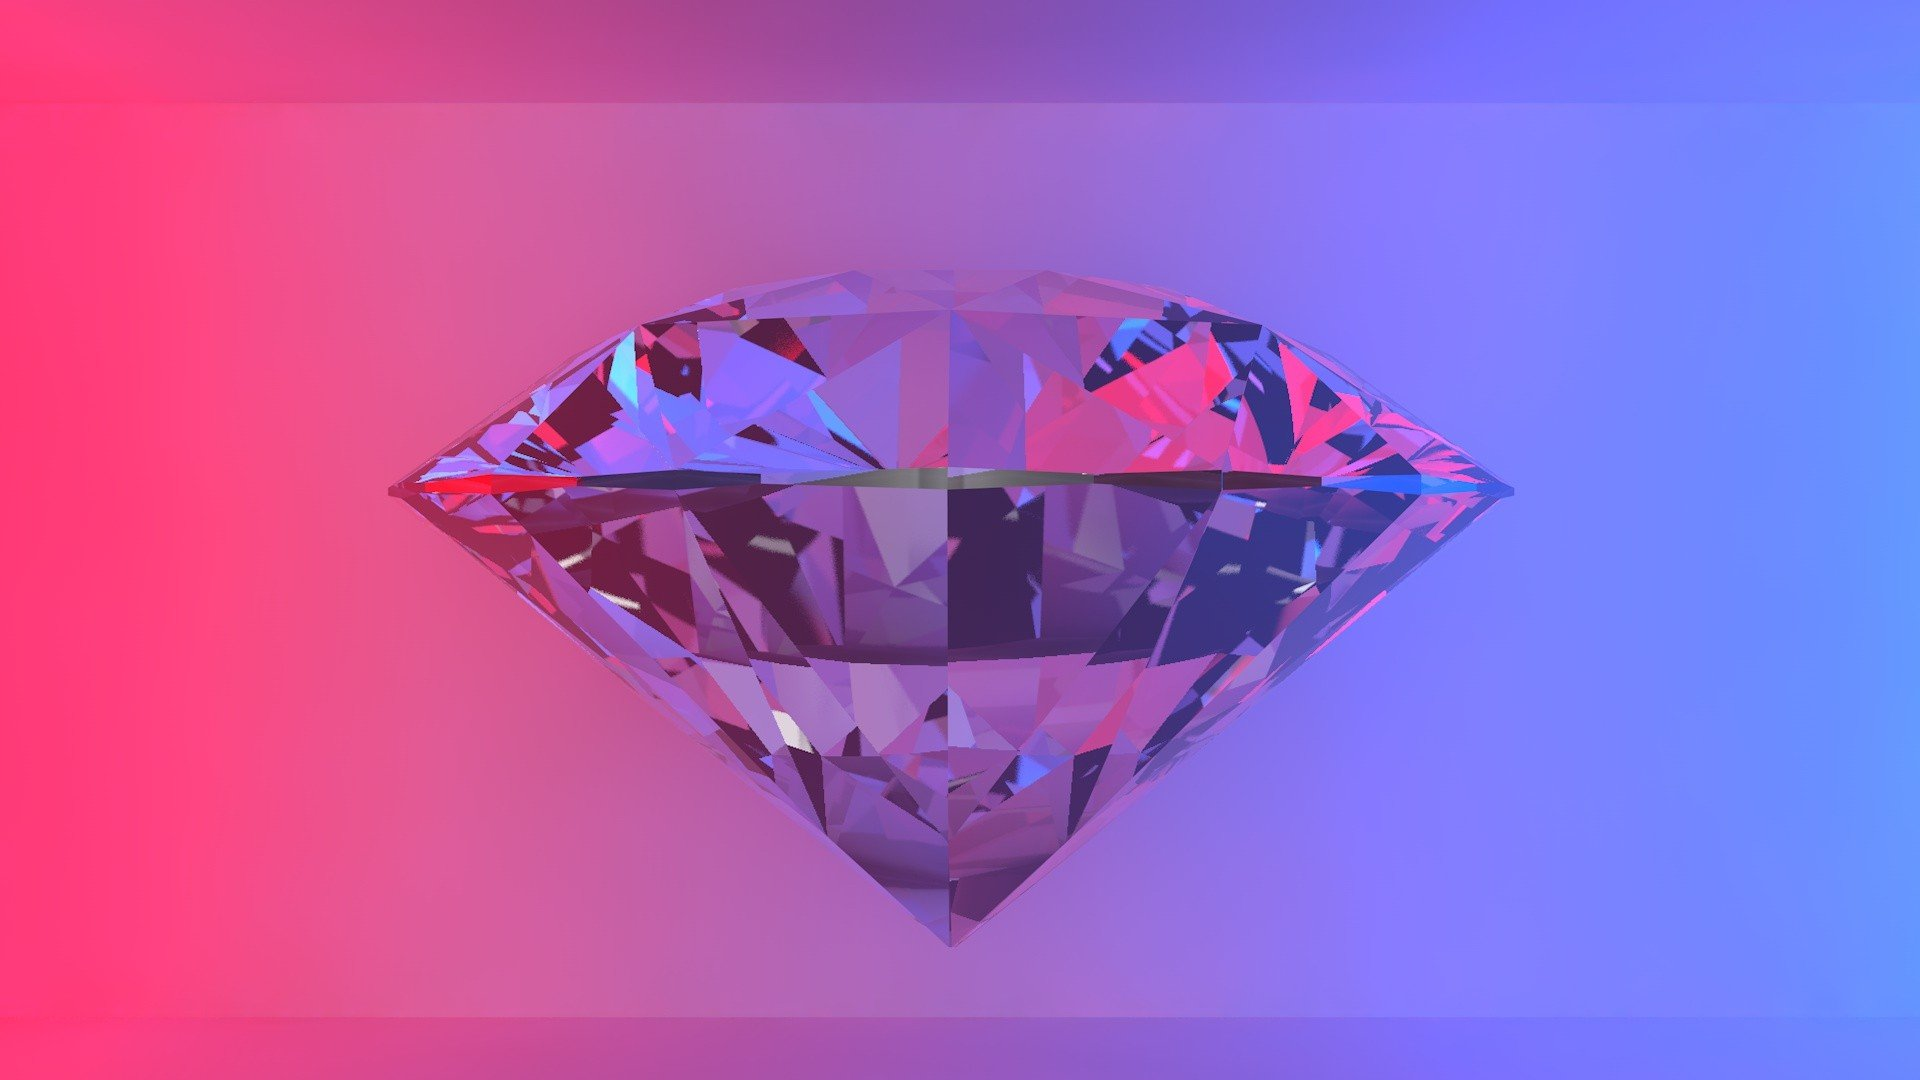 Cinema 4d diamonds jewels hd wallpapers desktop and for 4d wallpaper for home